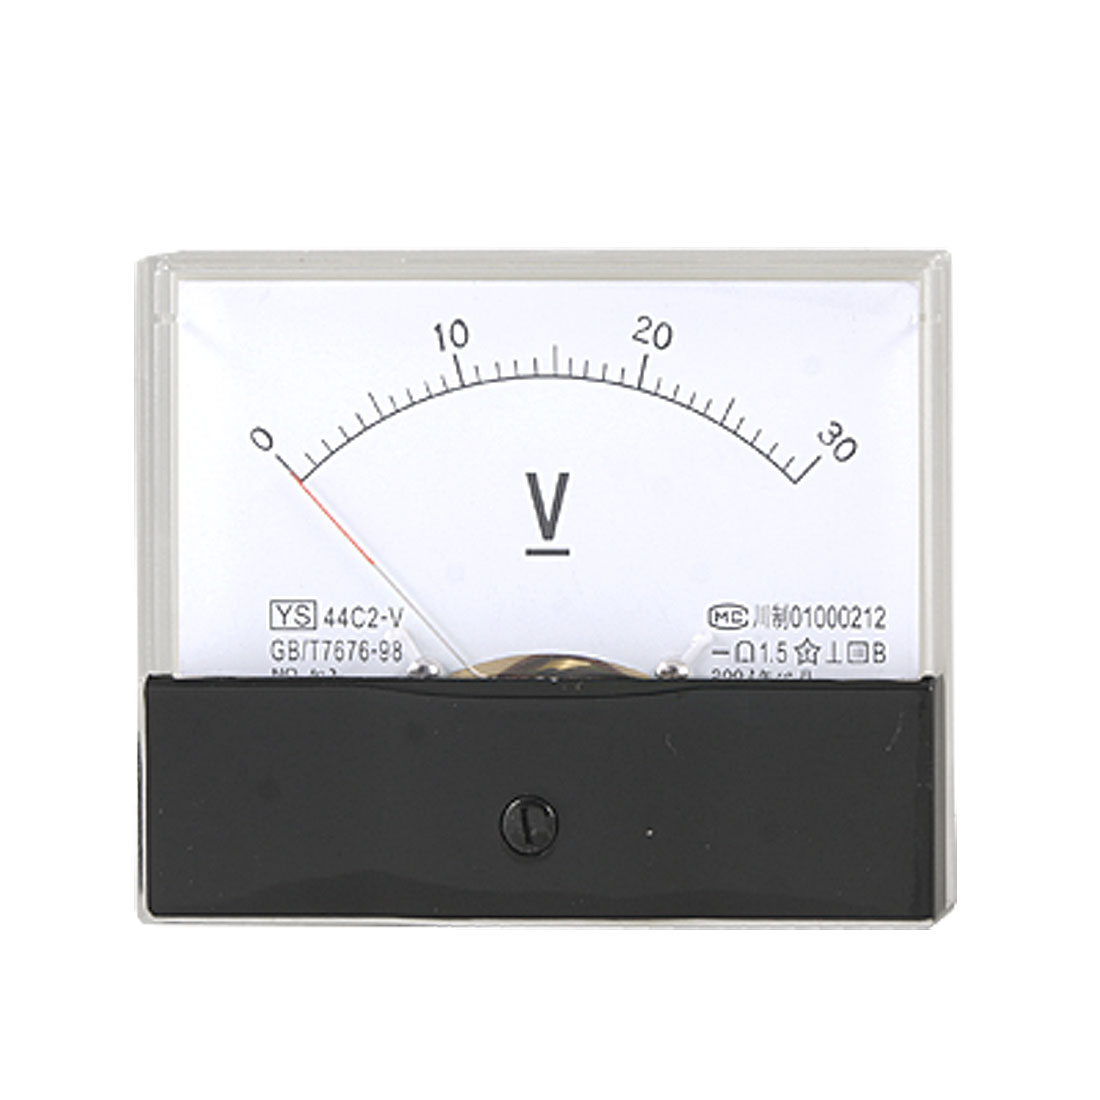 0-30V DC Voltage Measuring Panel Meter Analog Voltmeter Gauge 44C2